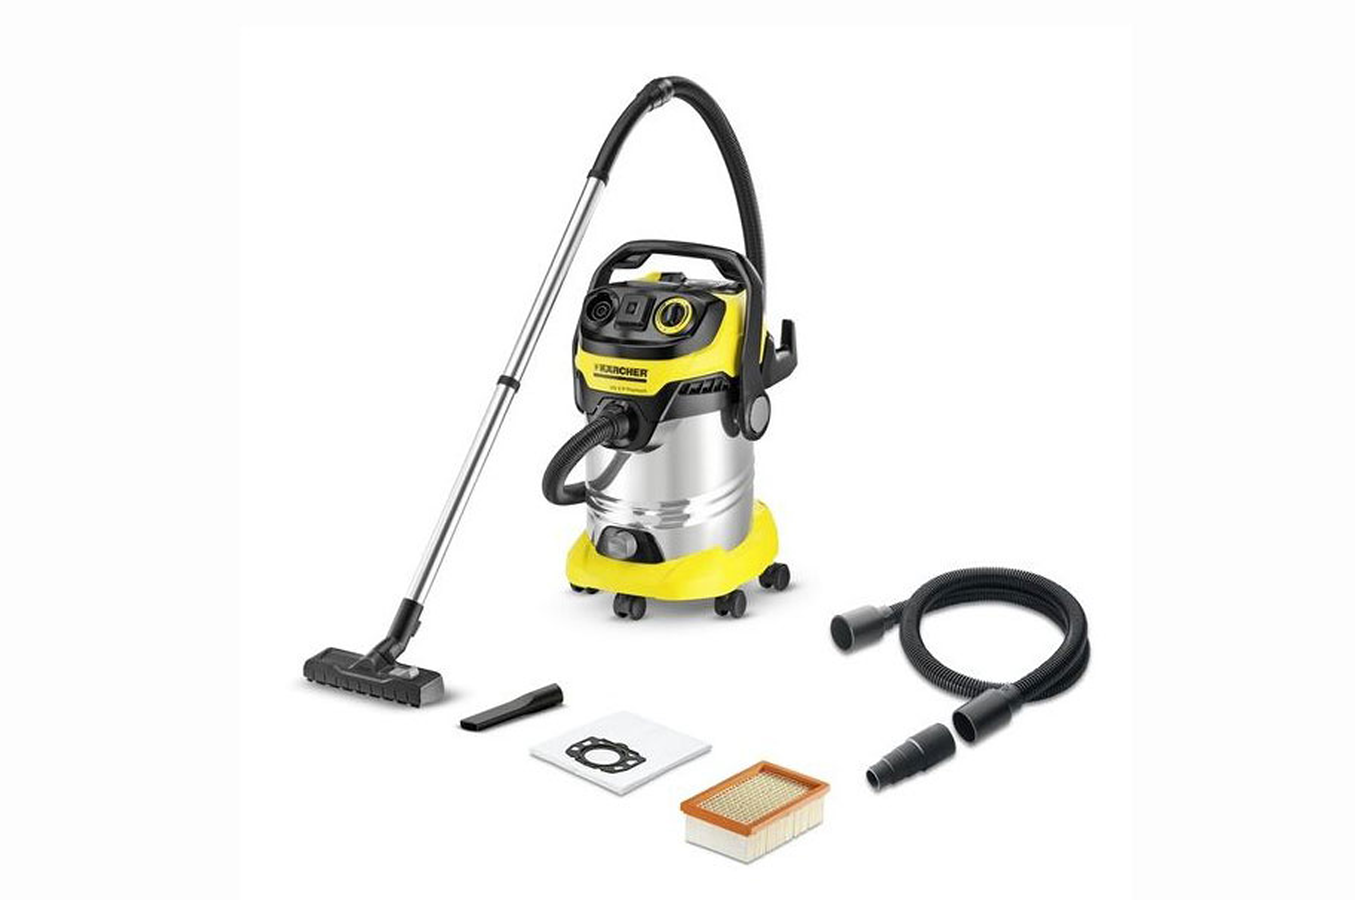 aspirateur eau et poussiere karcher wd 6 p premium 3851443 darty. Black Bedroom Furniture Sets. Home Design Ideas